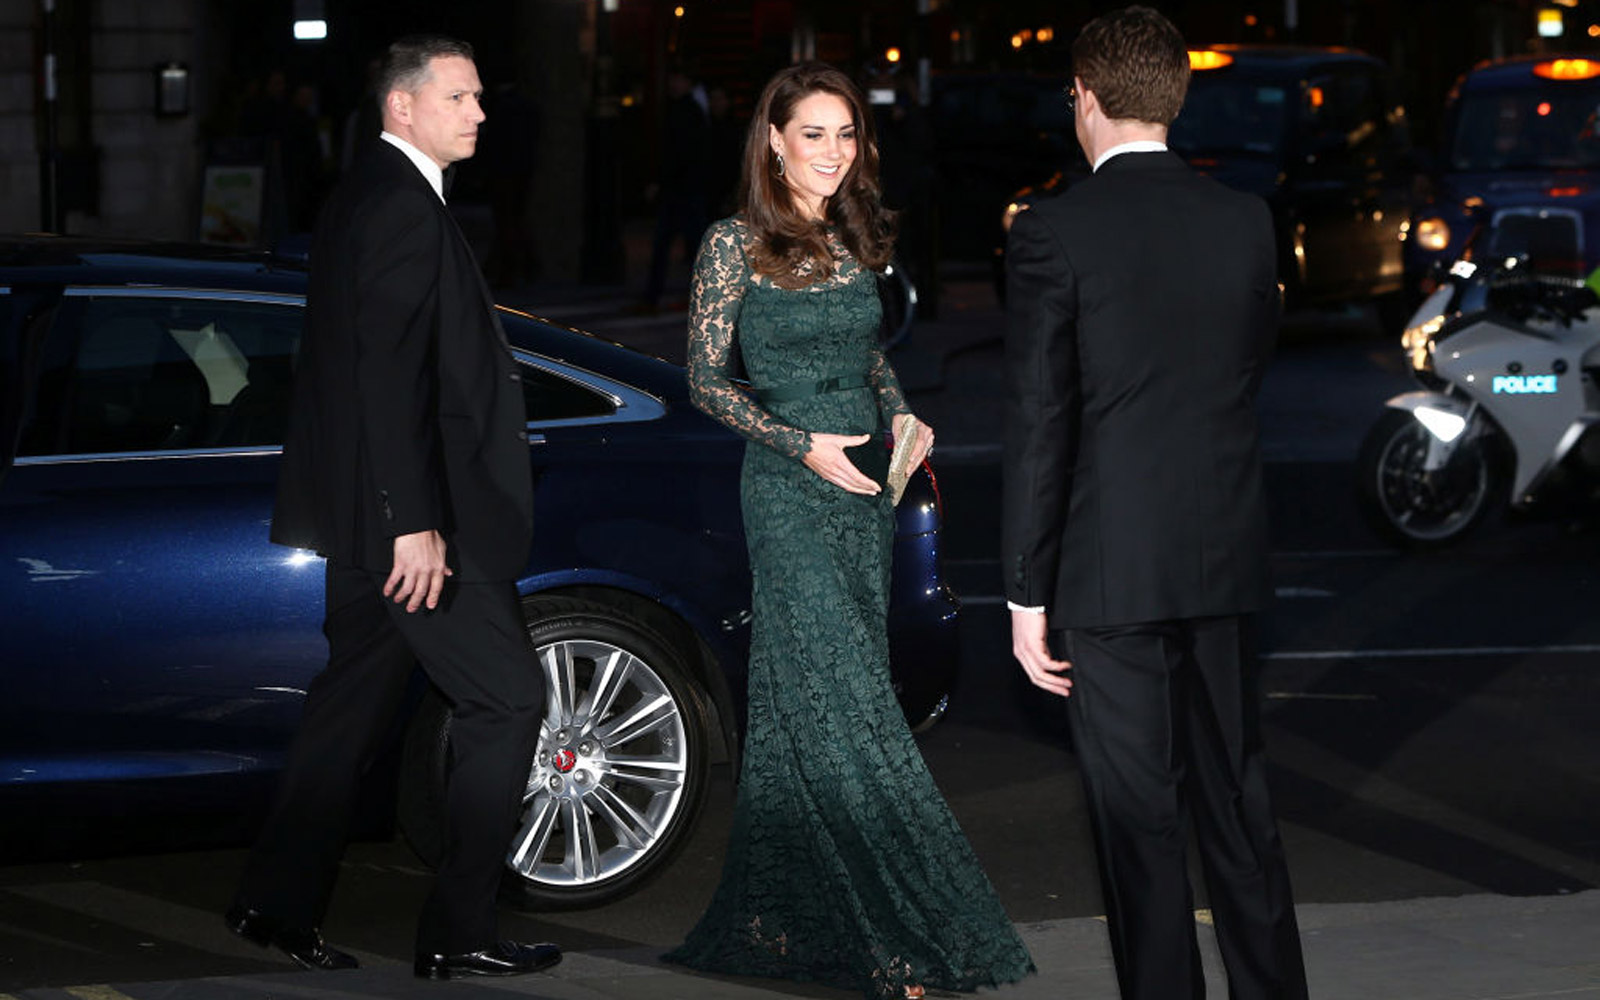 Britain's Catherine, Duchess of Cambridge (C), is greeted by Nicholas Cullinan Director of the National Portrait Gallery, as she arrives to attend the 2017 Portrait Gala, at the National Portrait Gallery in London on March 28, 2017.The 2017 Gala is fundr